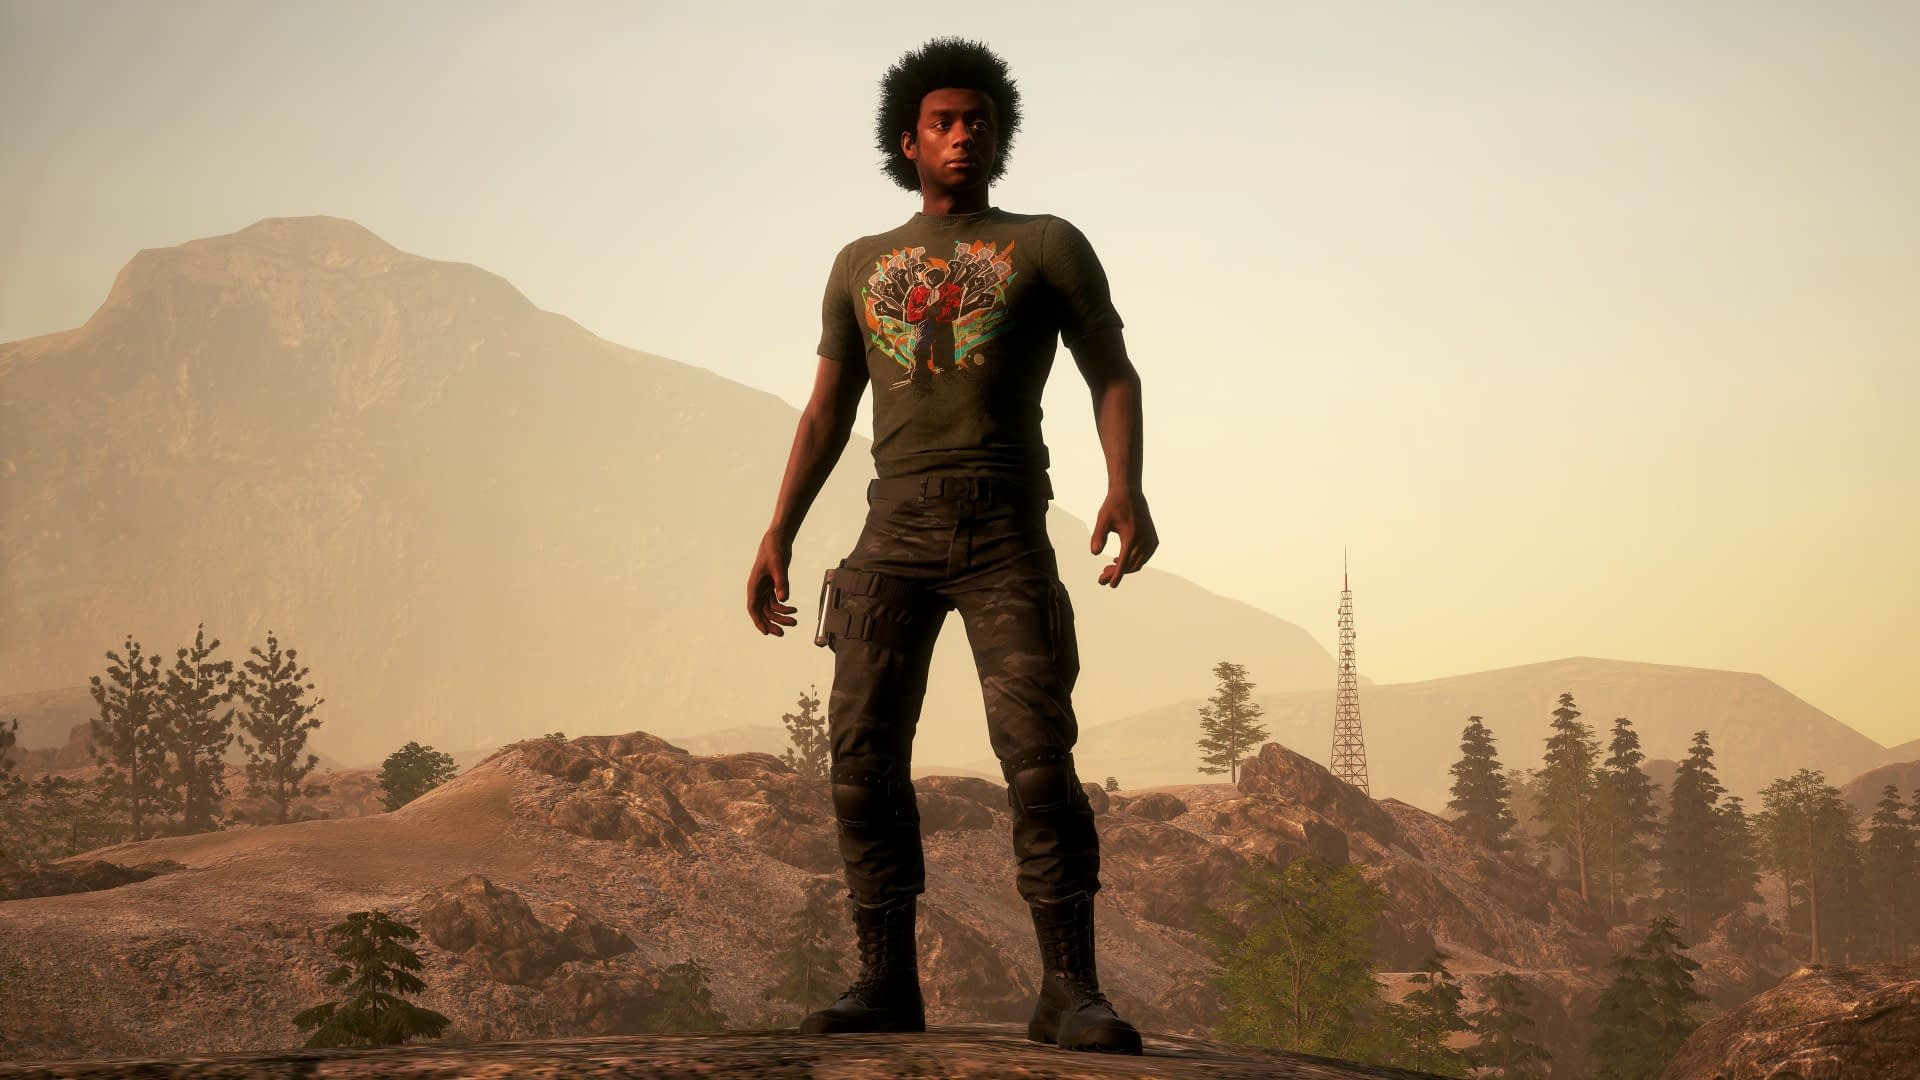 State of Decay Commissions New T-shirt to Support NAACP for Black History Month 1